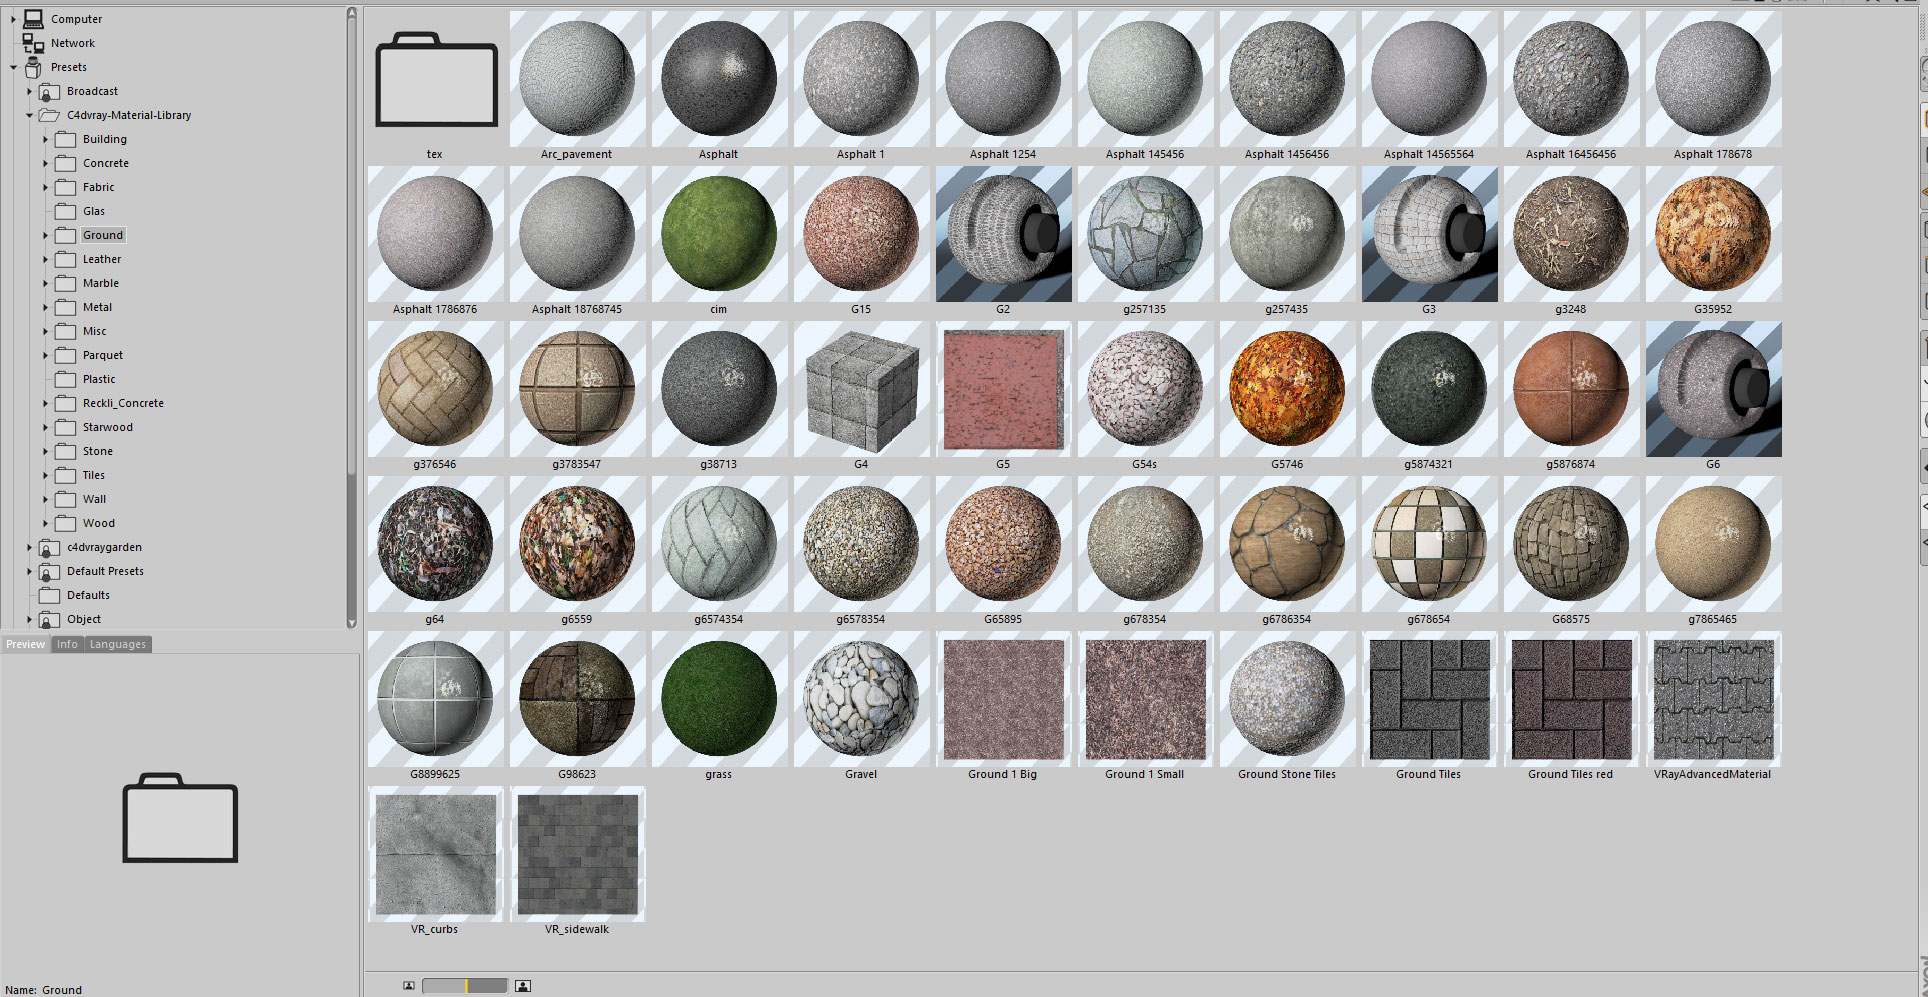 8 3 GB Vrayforc4d Material Library - Lib4d File - UPDATED